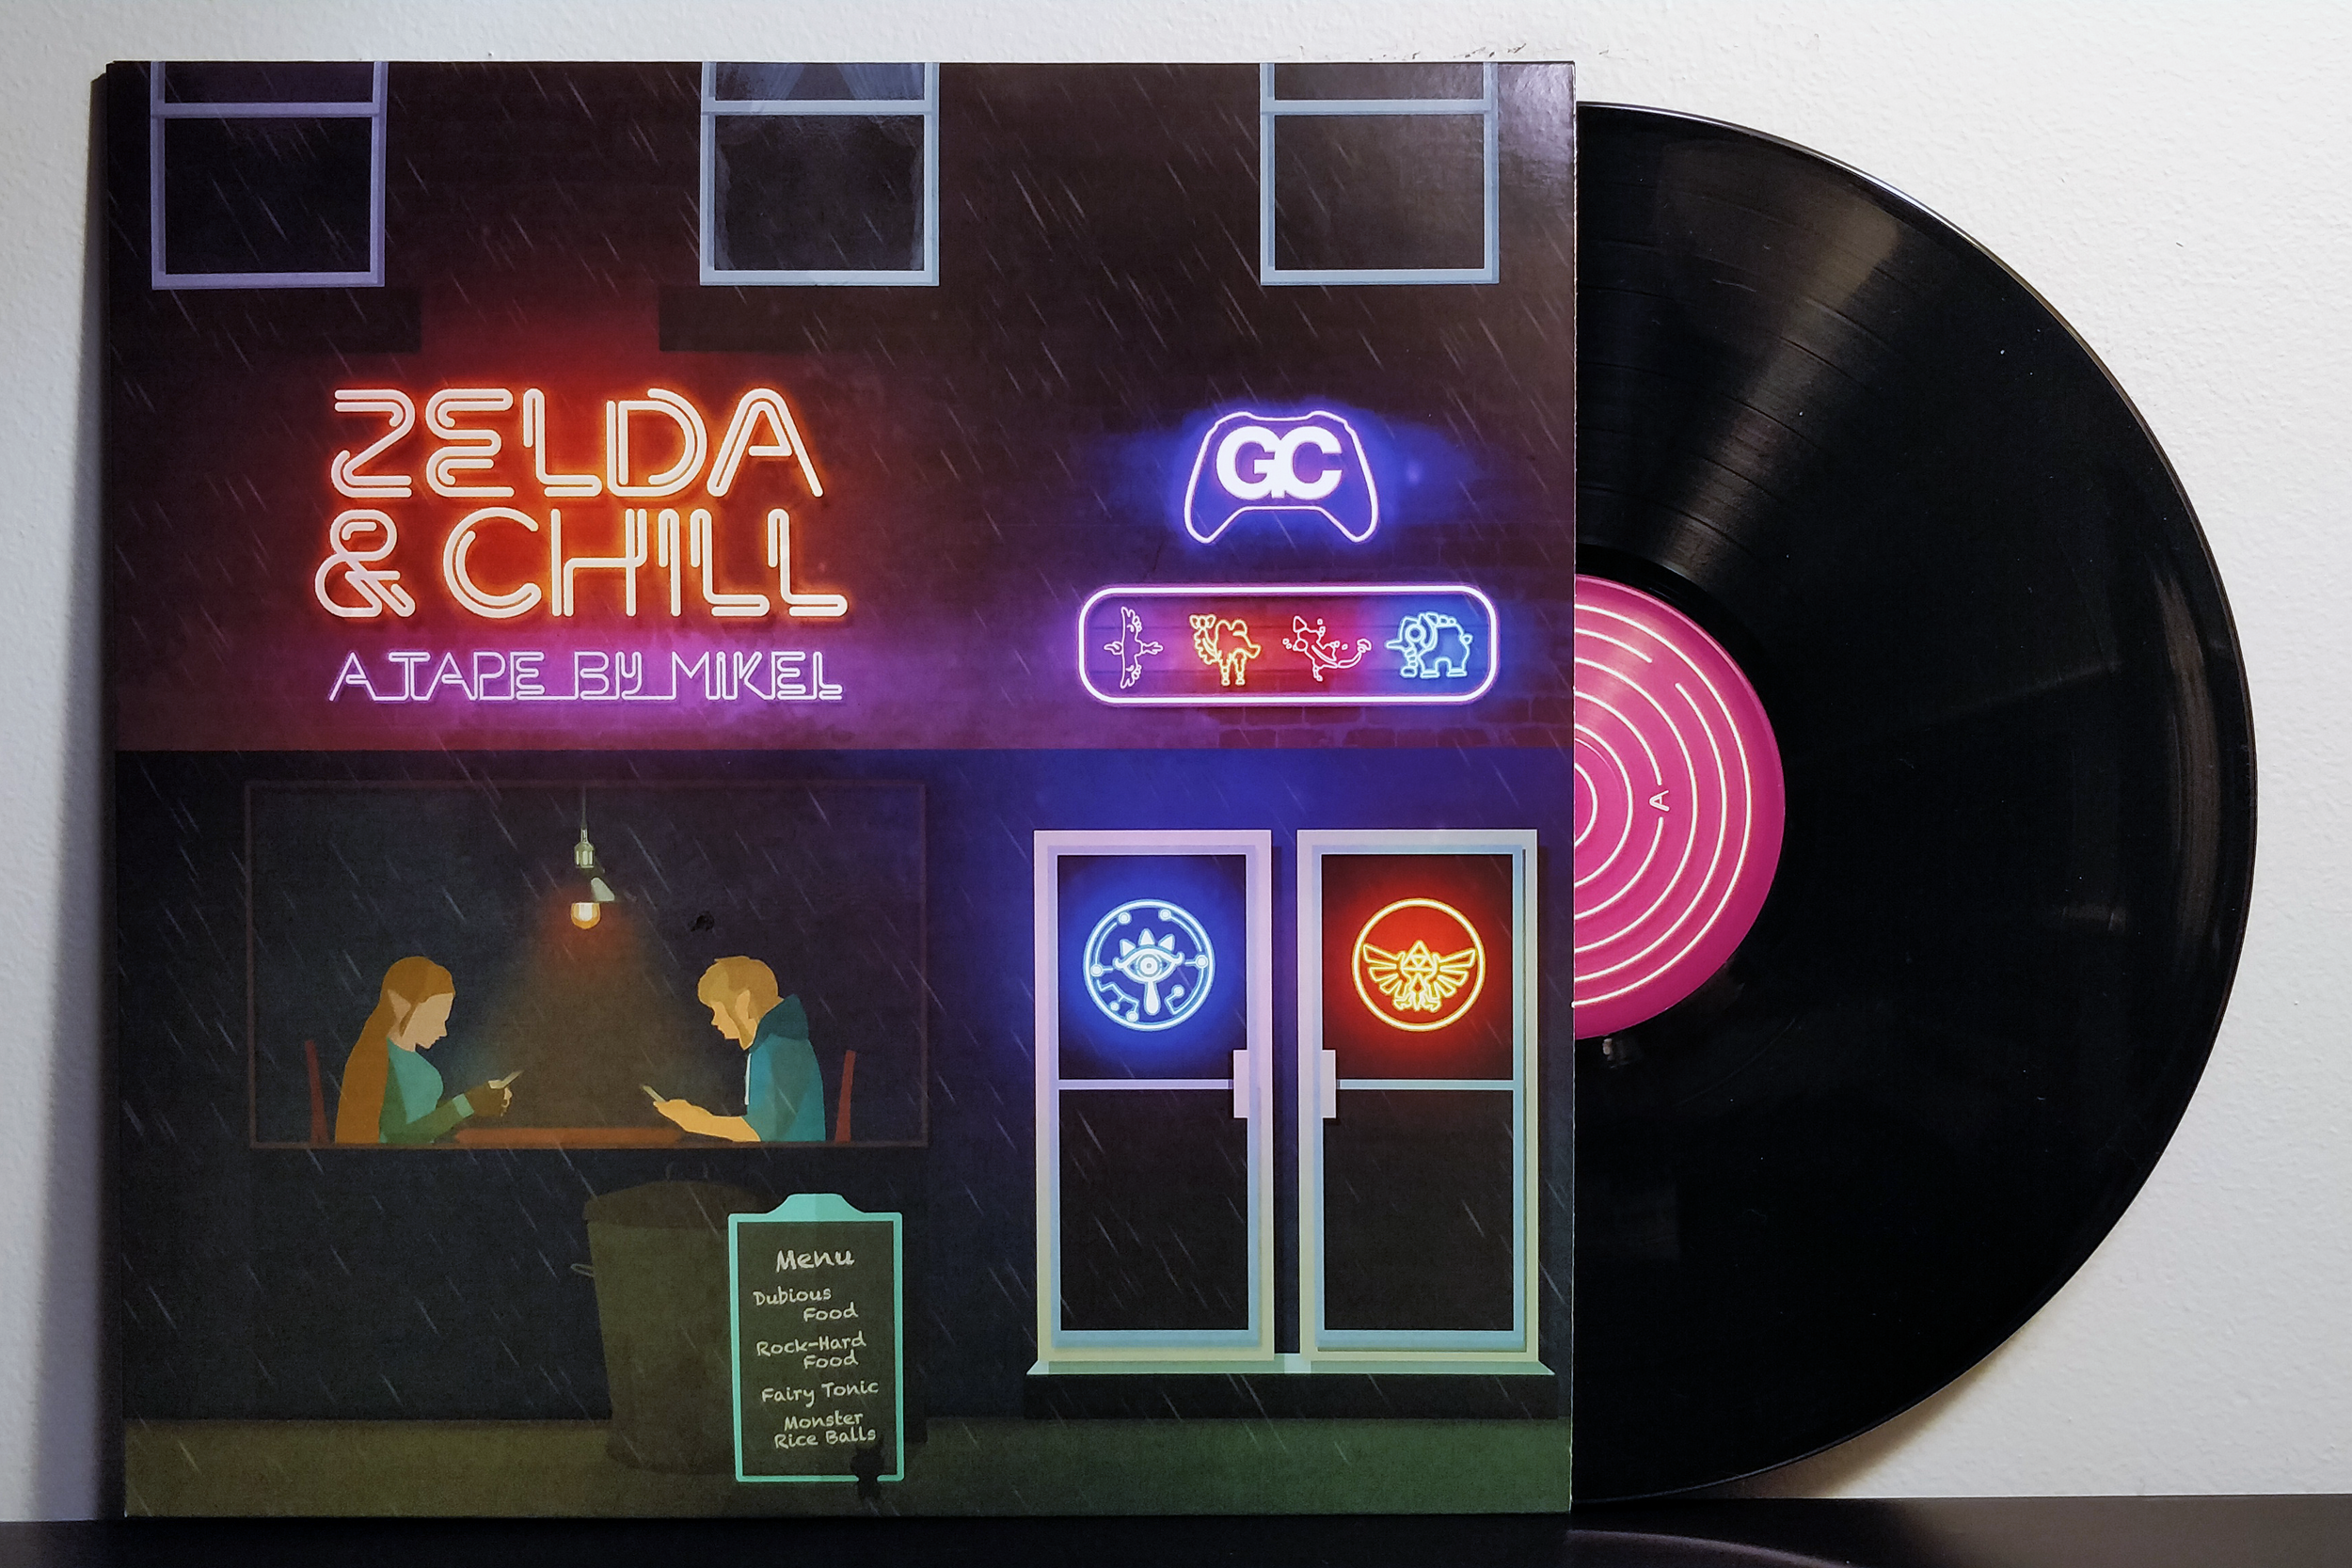 Zelda & Chill by Mikel & GameChops pressed on black vinyl by Materia Collective